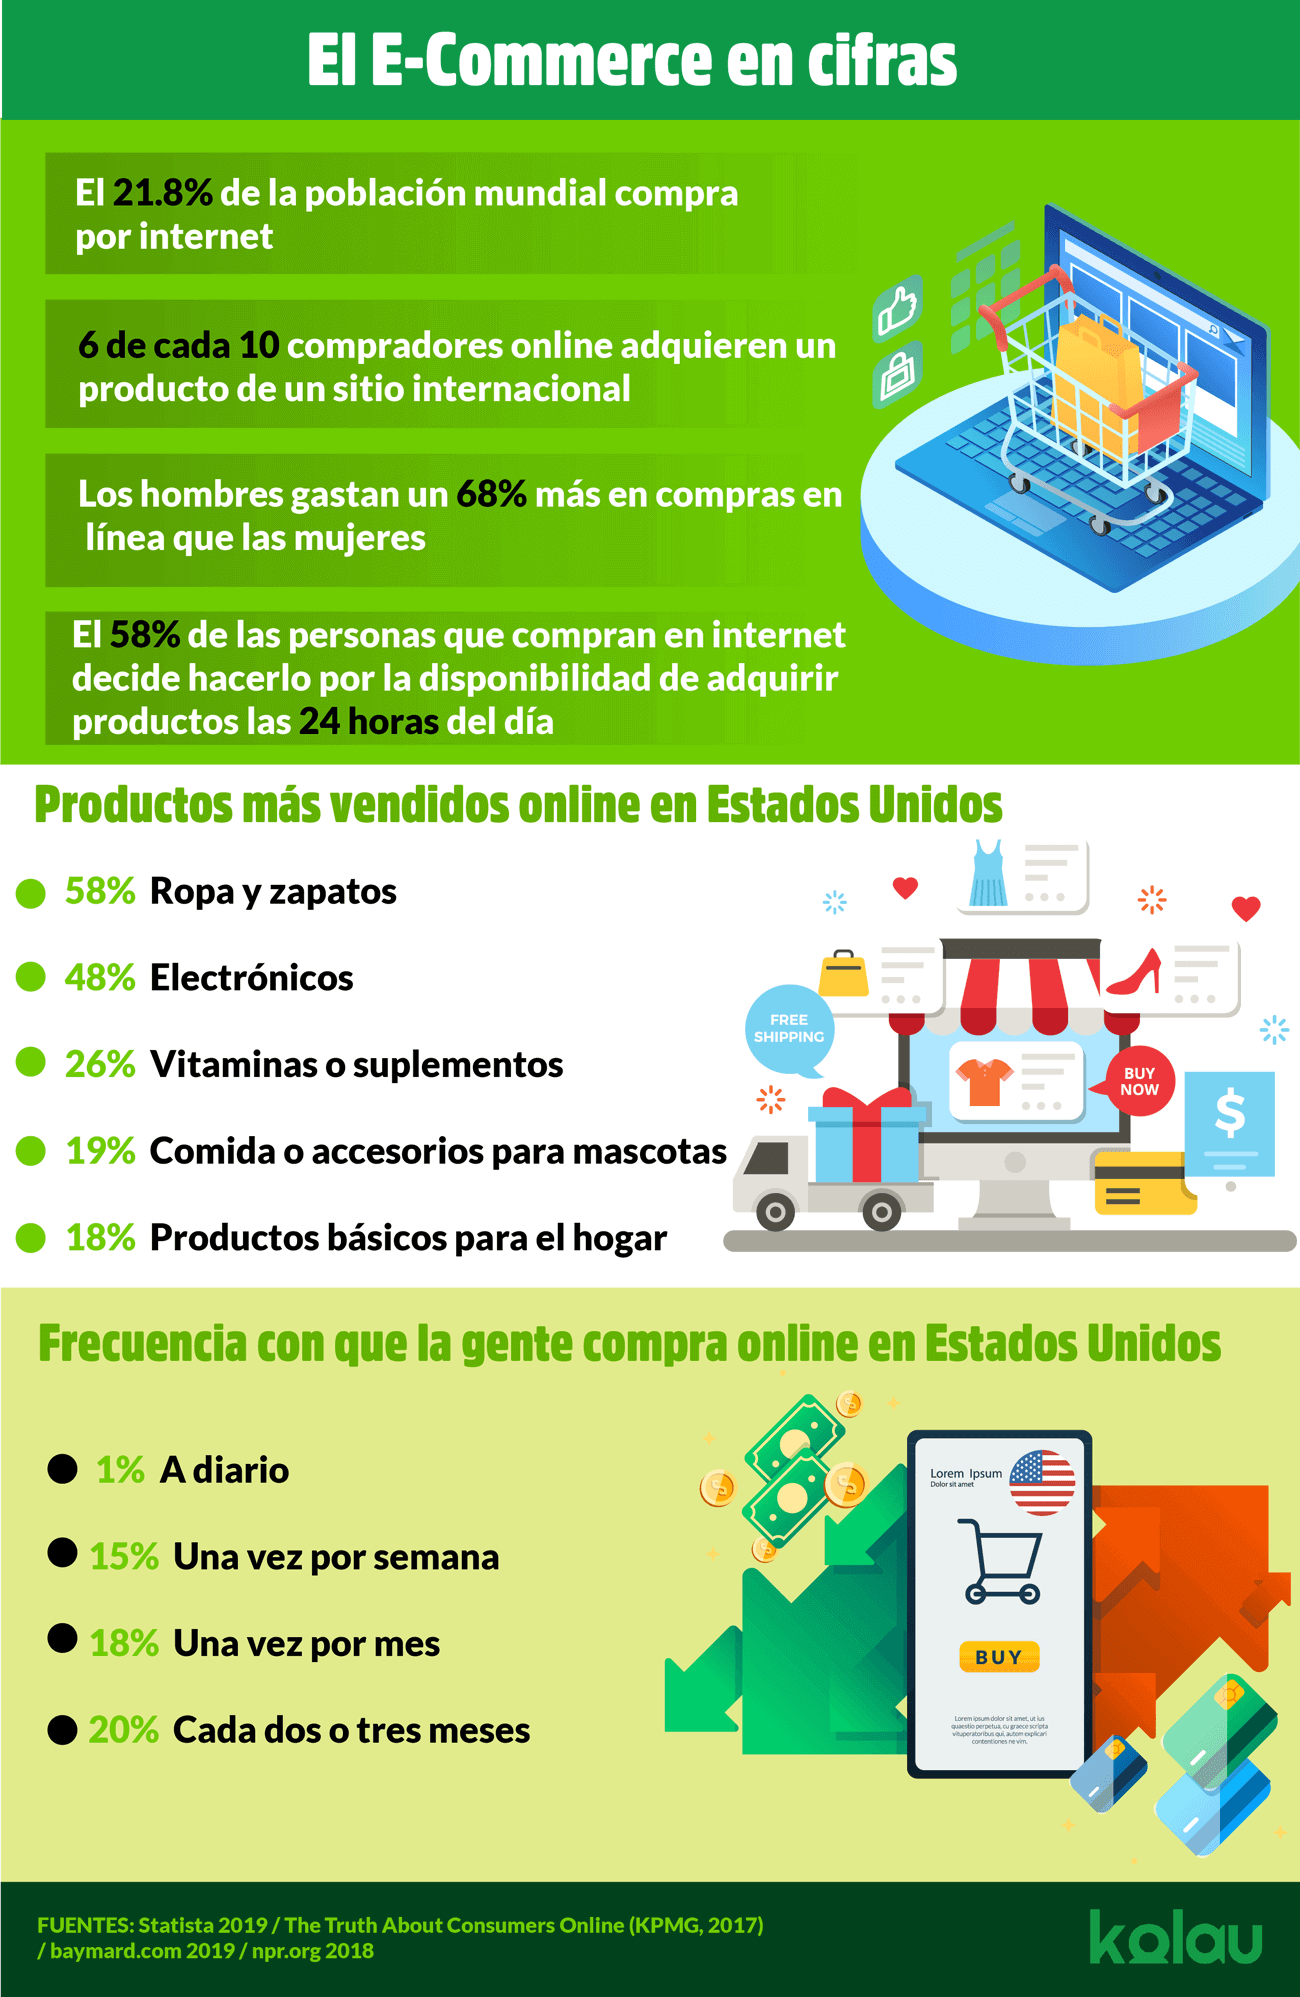 El E-commerce en cifras.